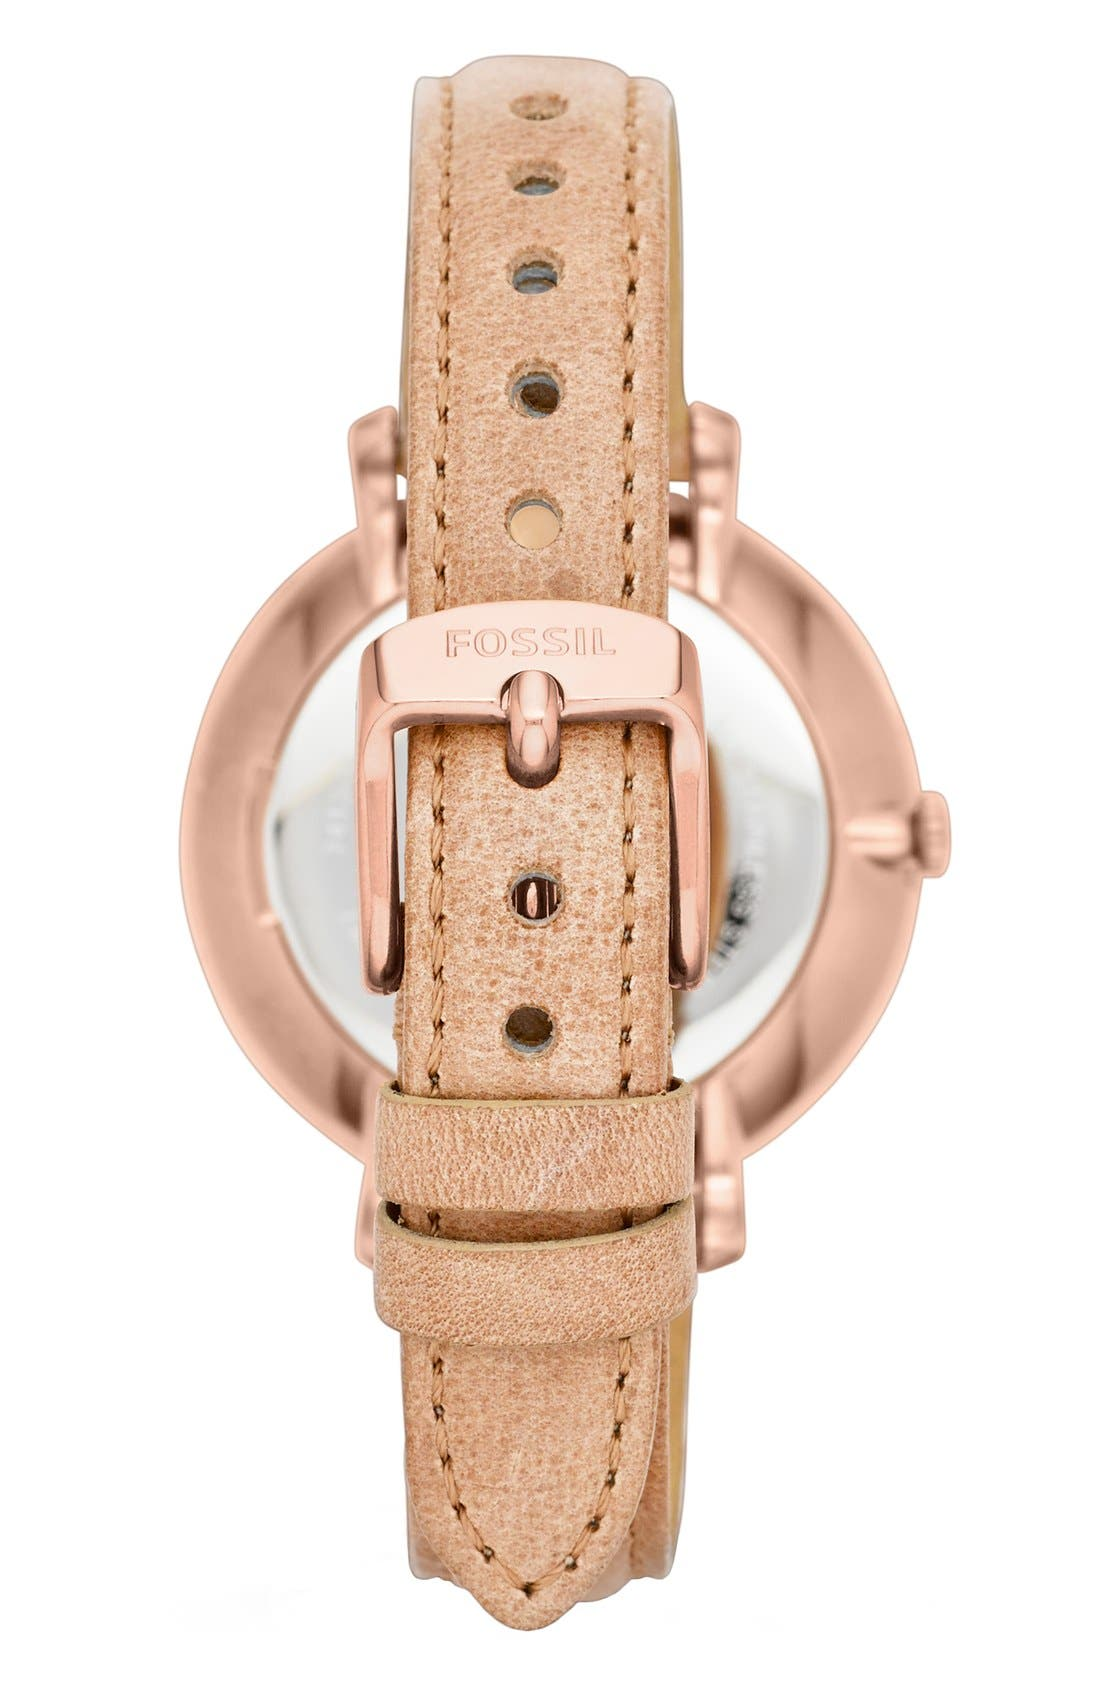 FOSSIL, 'Jacqueline' Round Leather Strap Watch, 36mm, Alternate thumbnail 3, color, SAND/ ROSE GOLD